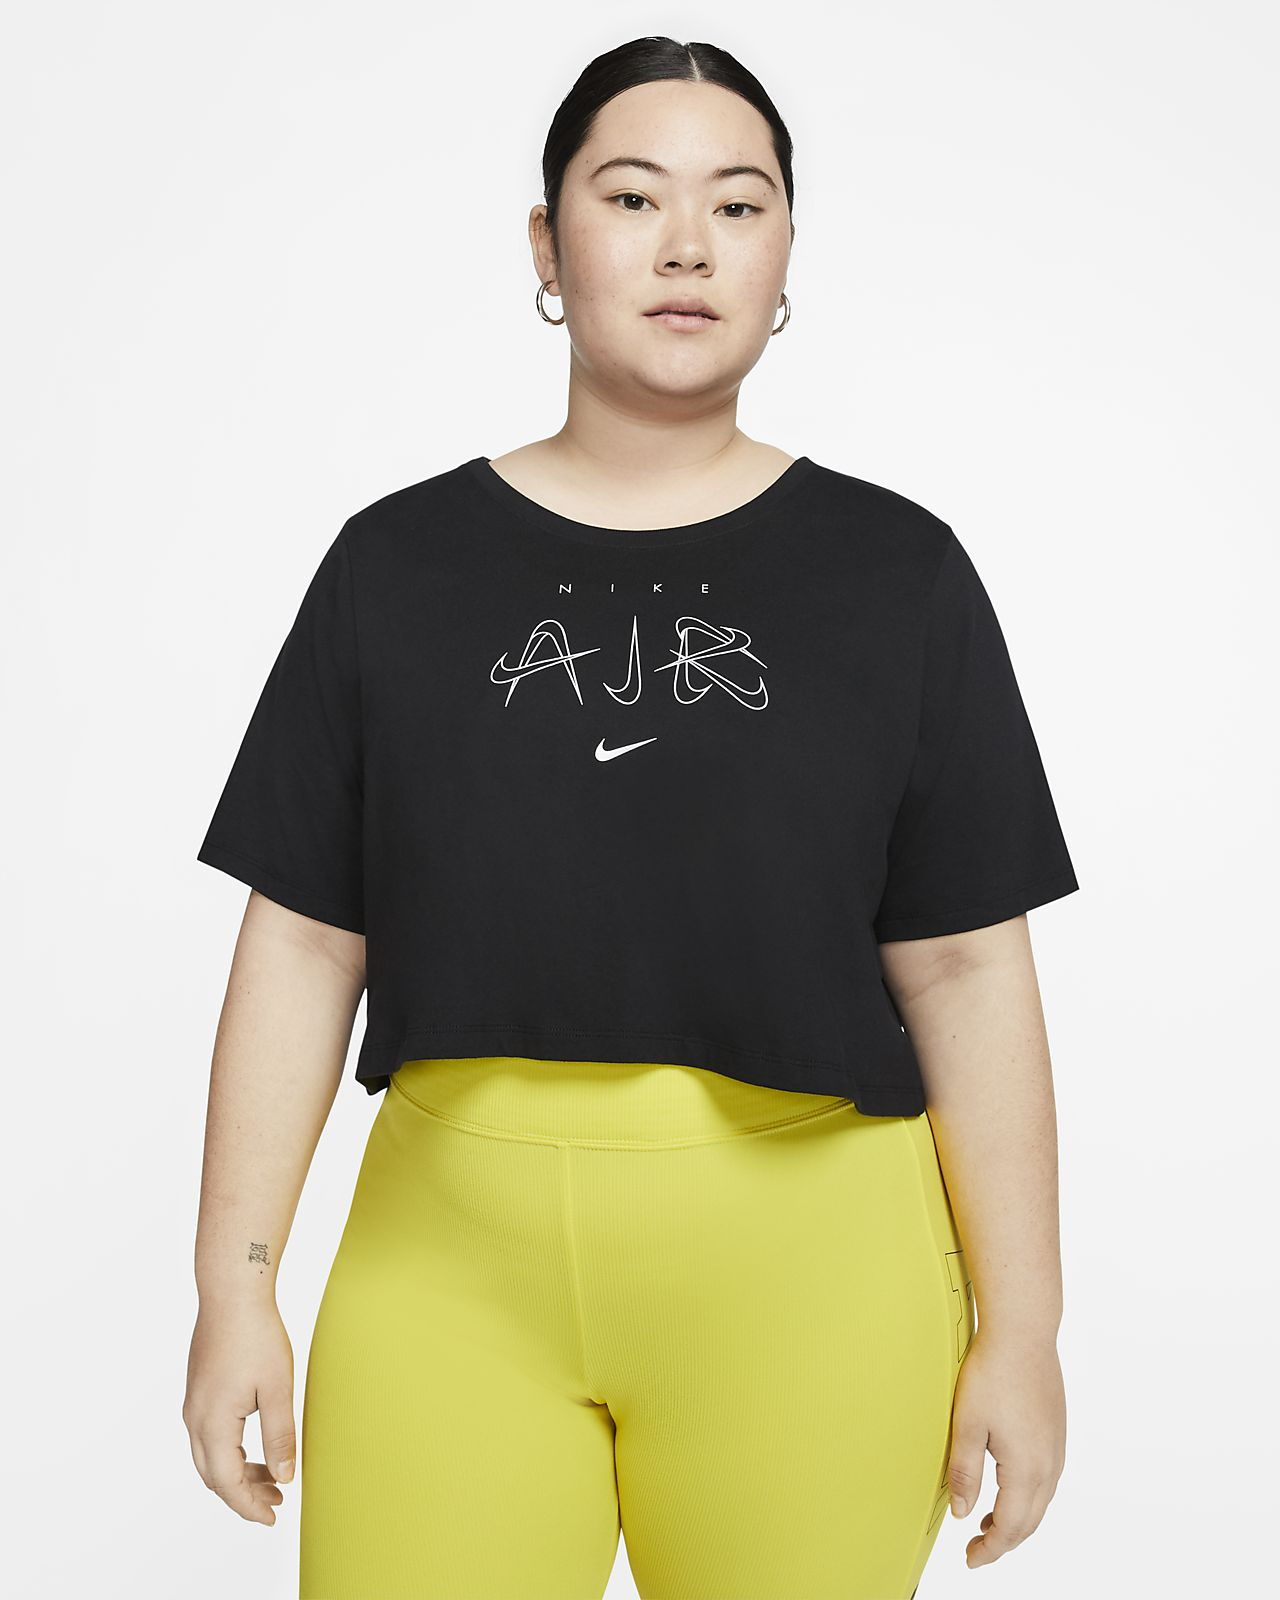 Tee-shirt court Nike Sportswear Luxe pour Femme (grande taille)